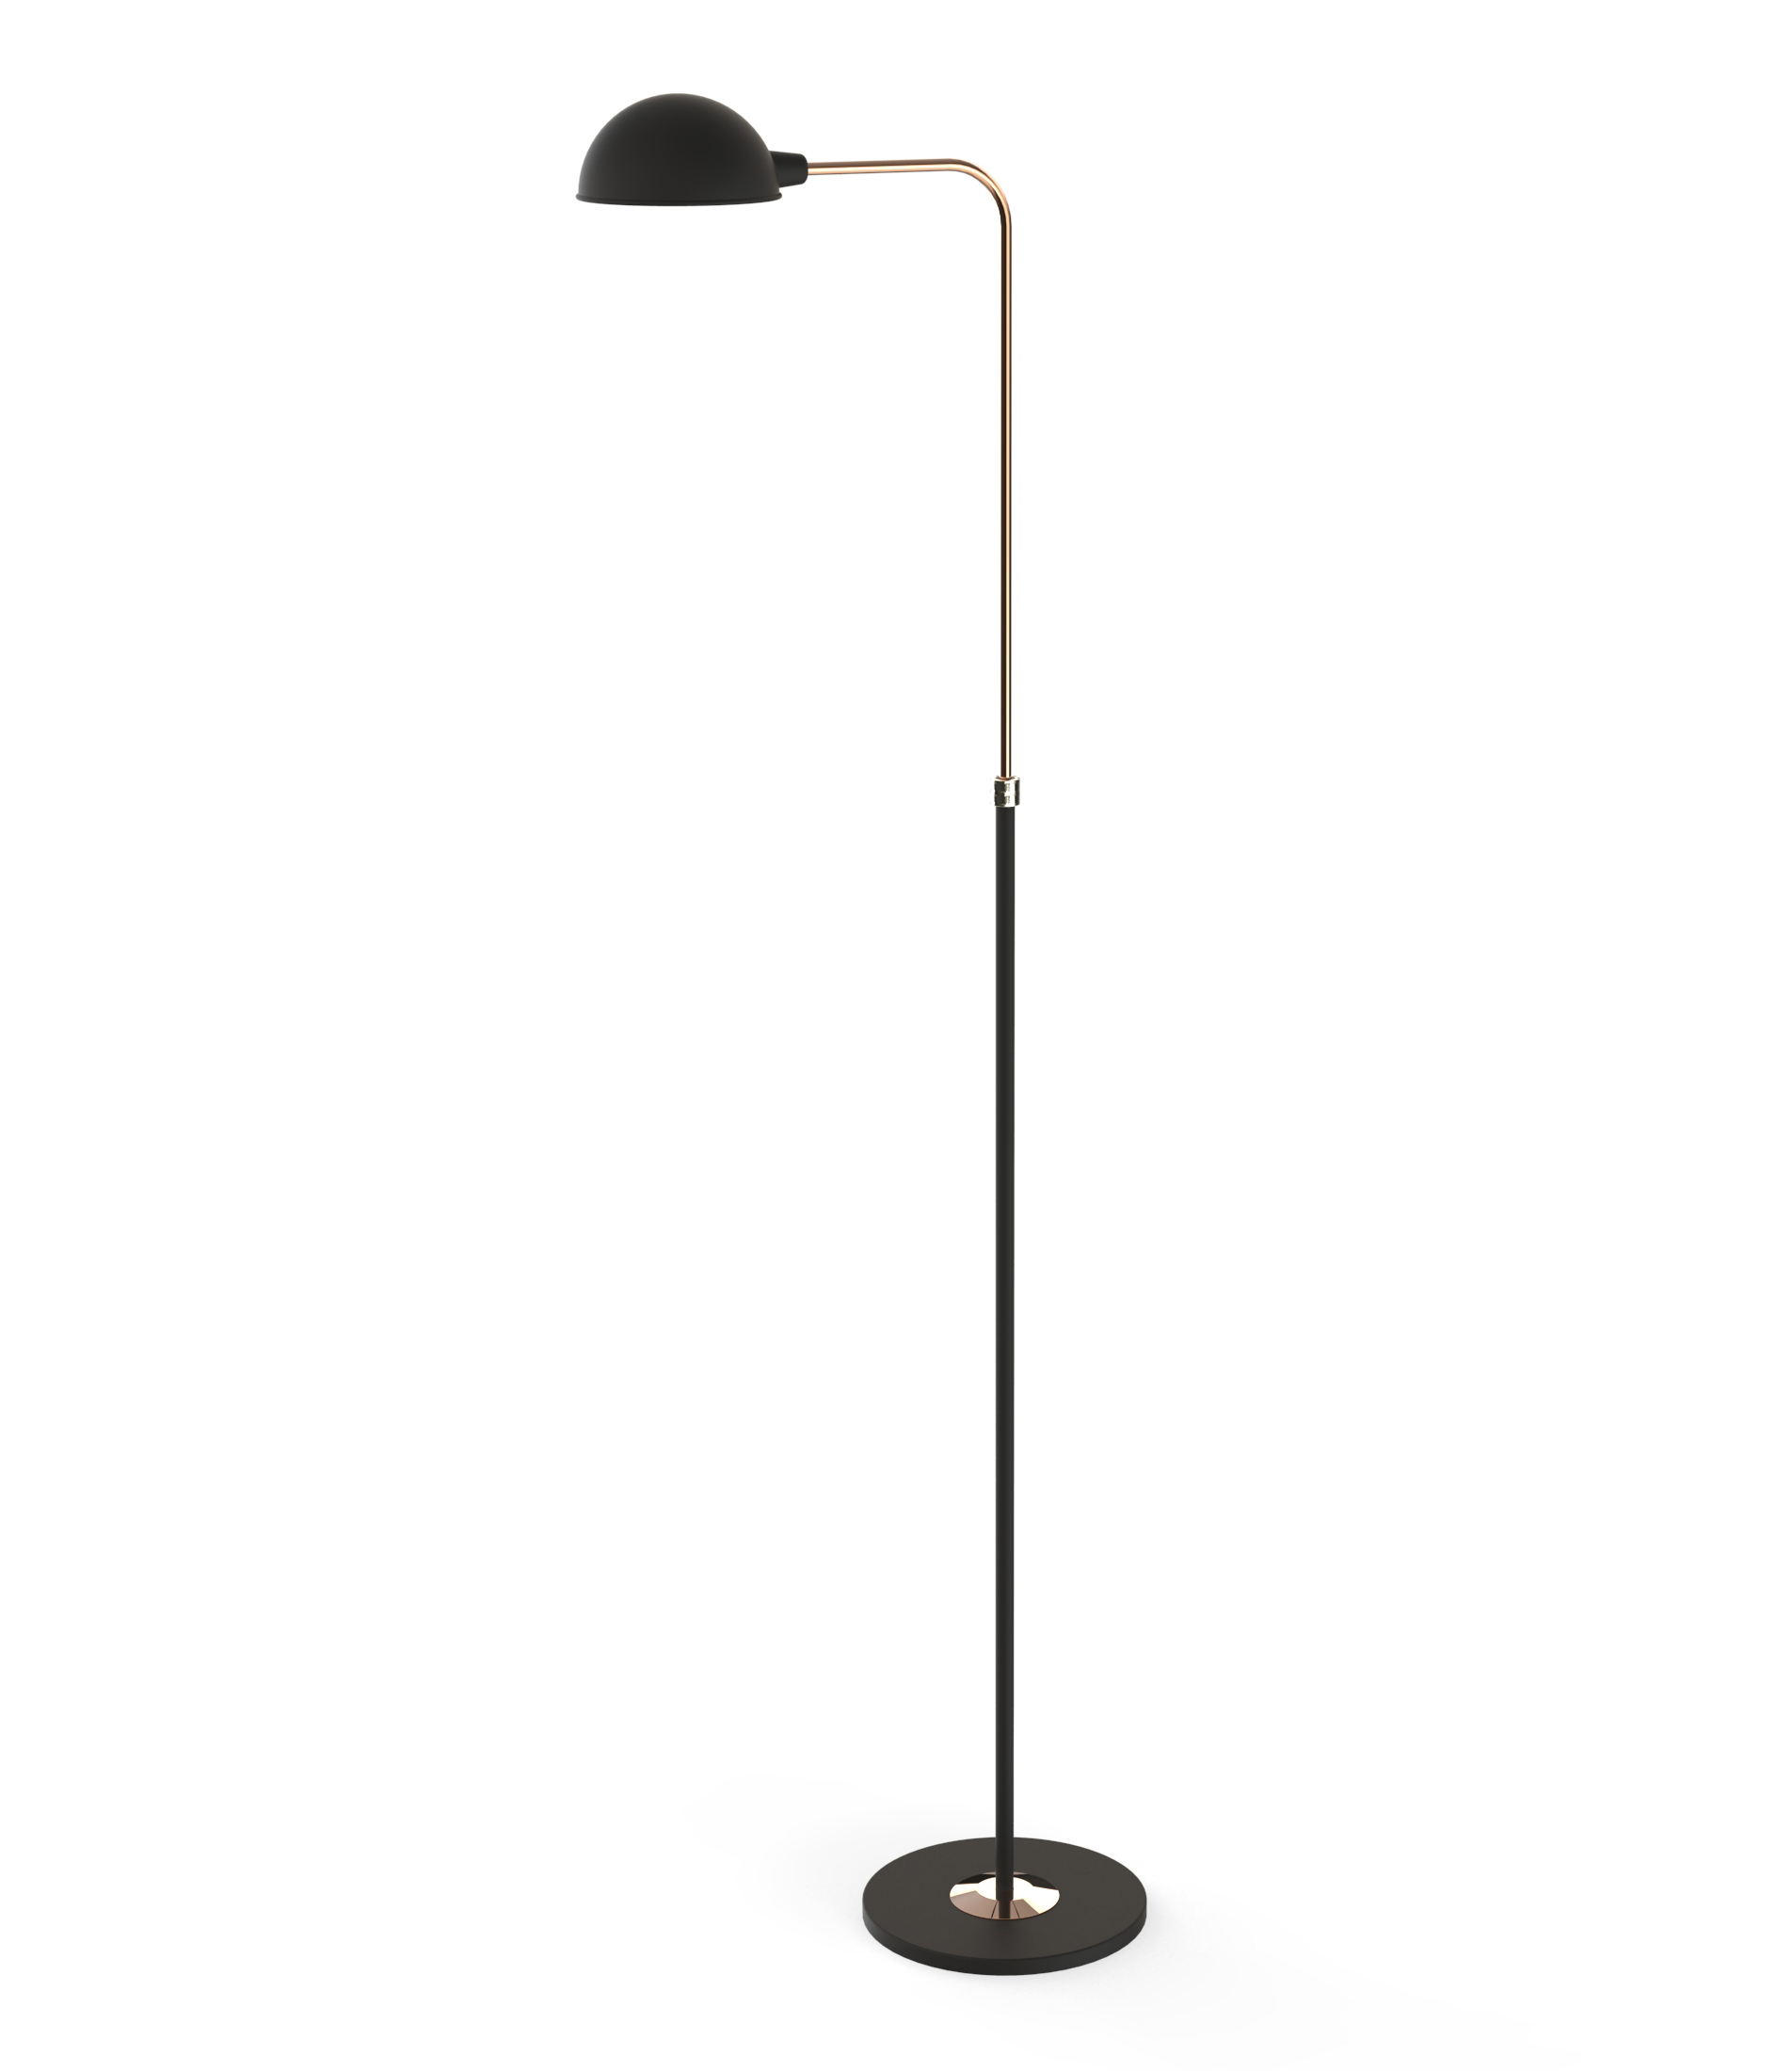 The Classic Modern Floor Lamp To Adorn Your Home 6 modern floor lamp The Classic Modern Floor Lamp To Adorn Your Home The Classic Modern Floor Lamp To Adorn Your Home 6